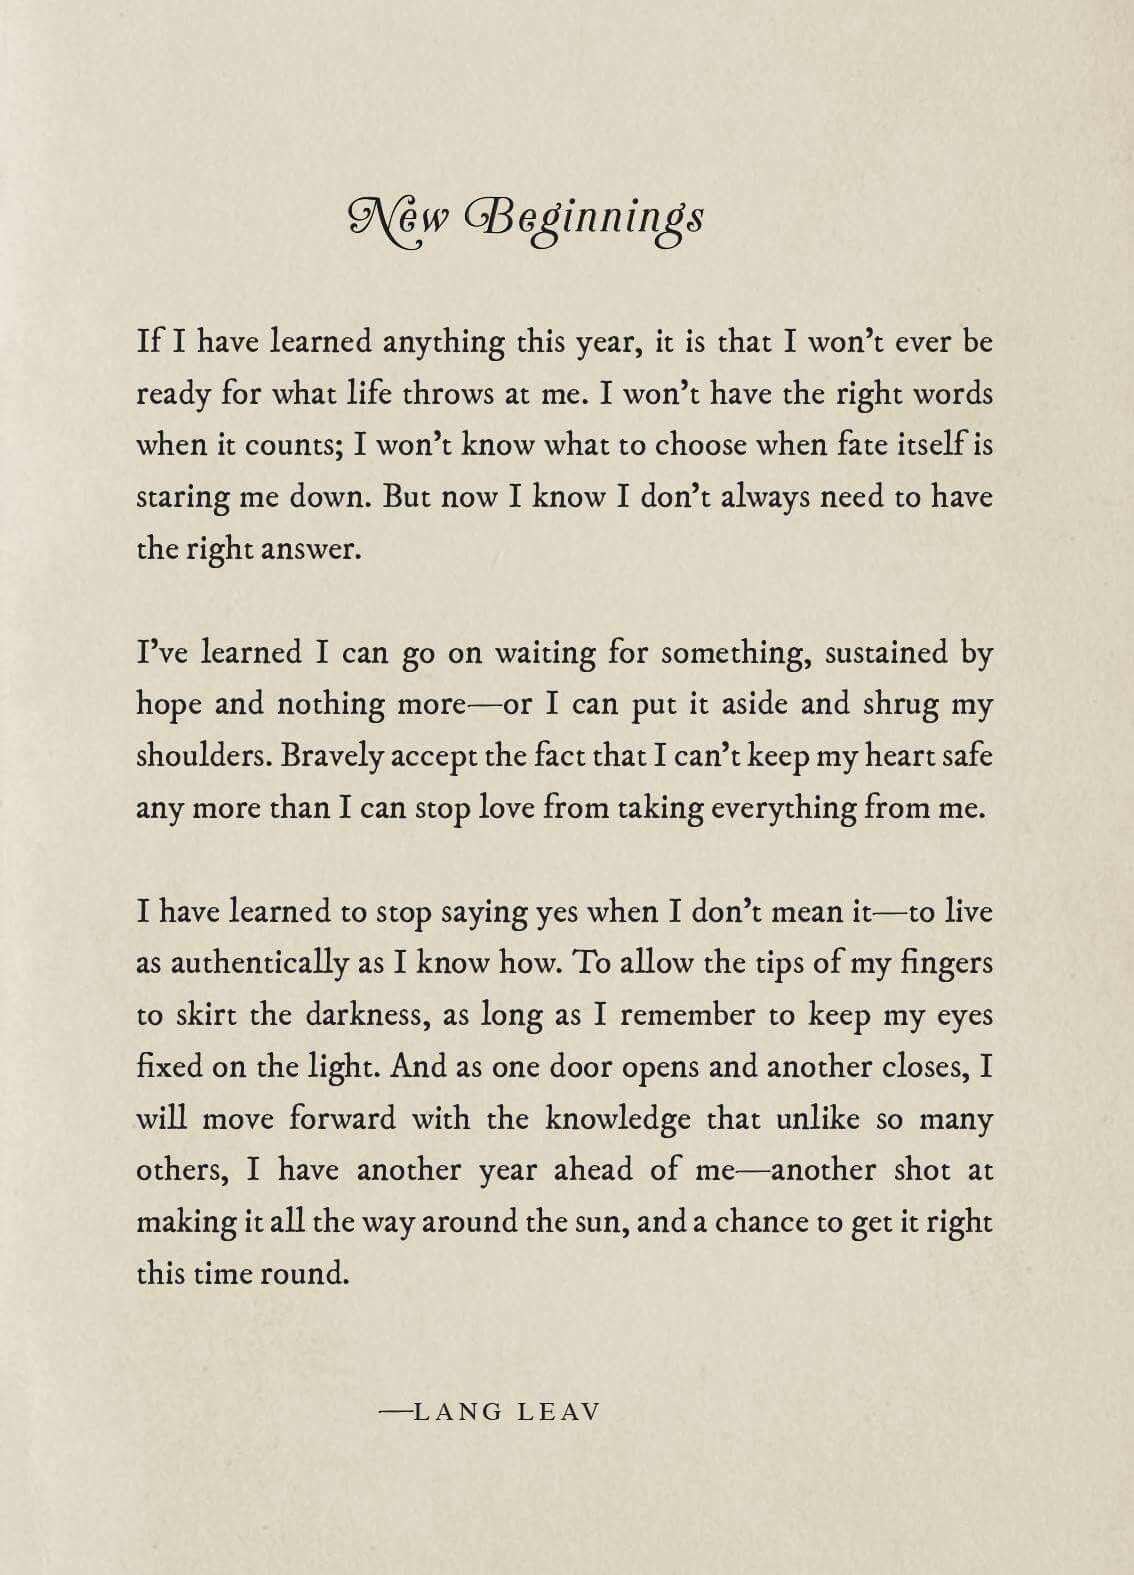 Pin by Jessica Bour on Quotes in 2018 | Pinterest | Lang leav ...